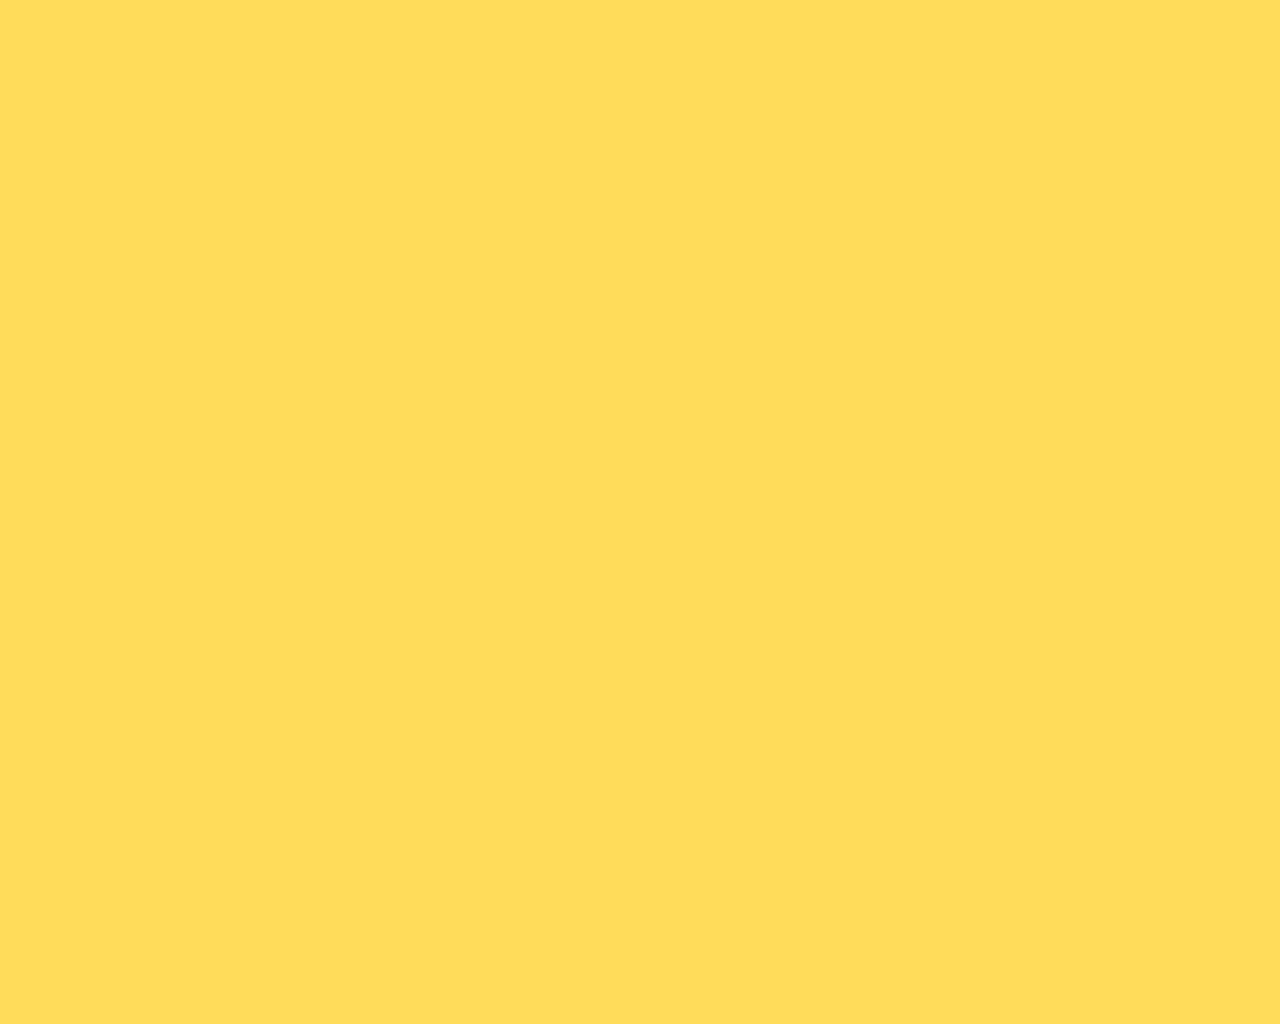 1280x1024 Mustard Solid Color Background